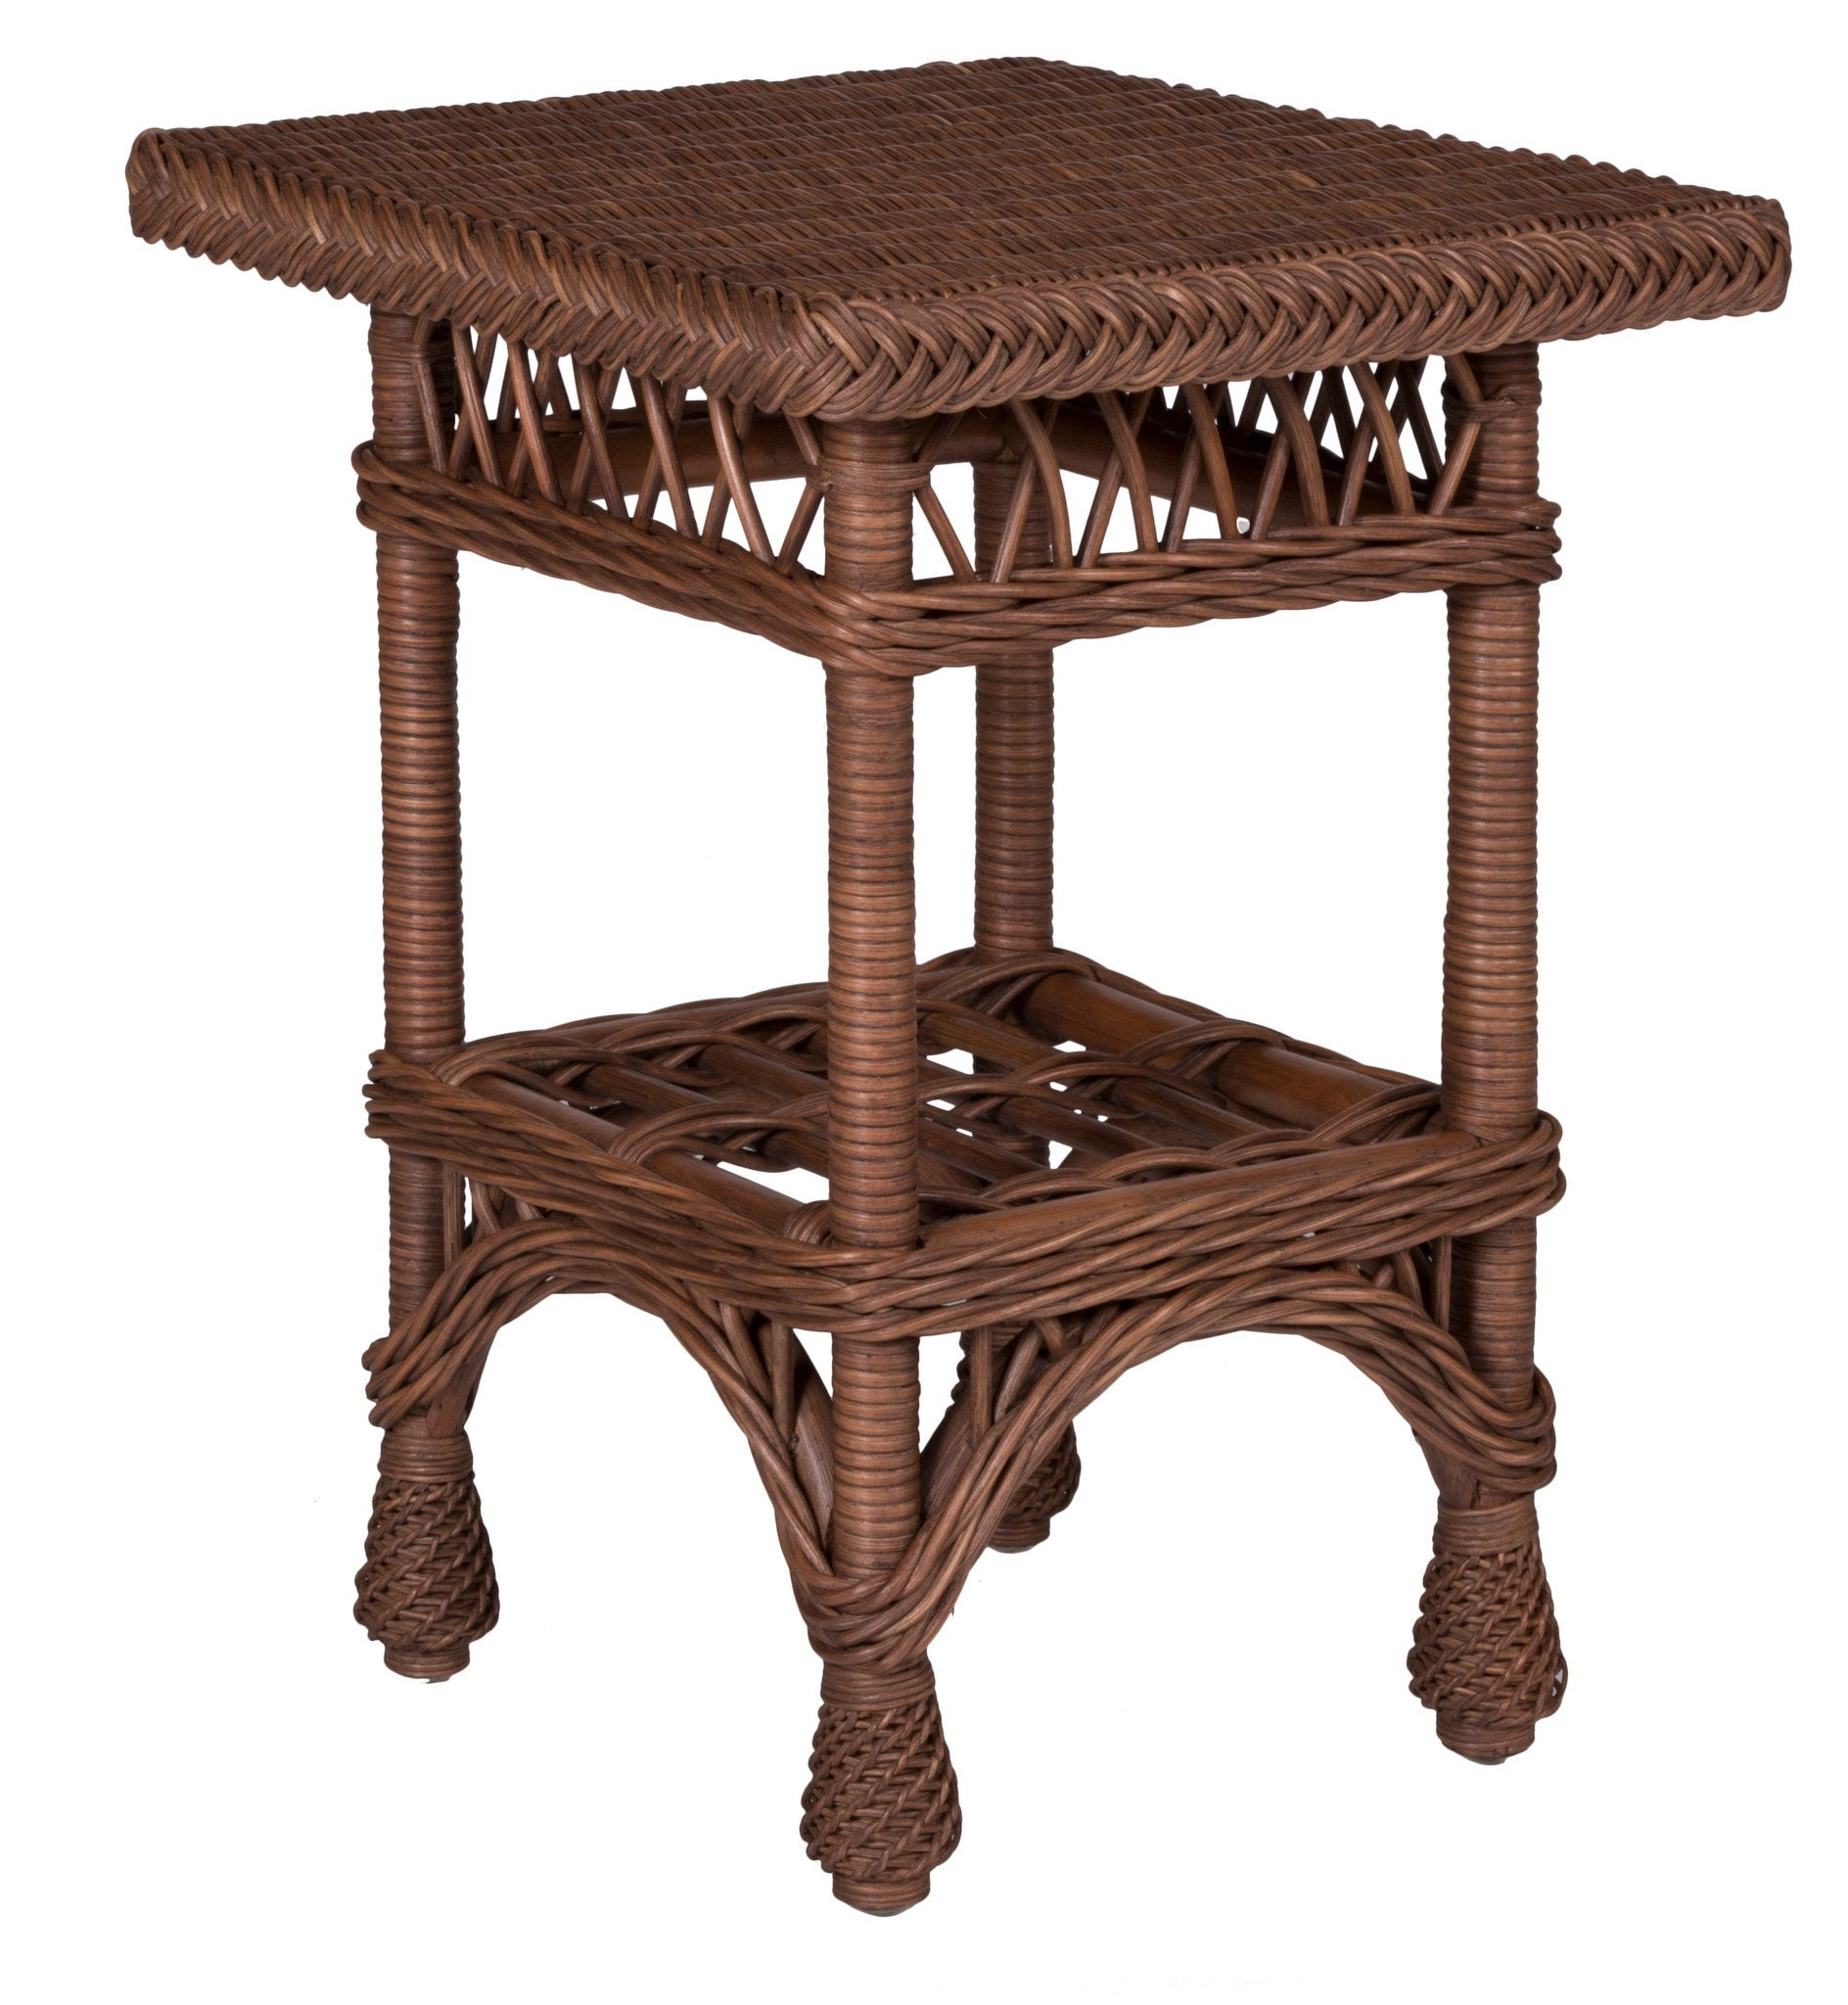 Designer Wicker & Rattan By Tribor Harbor Front End Table by Designer Wicker from Tribor End Table - Rattan Imports